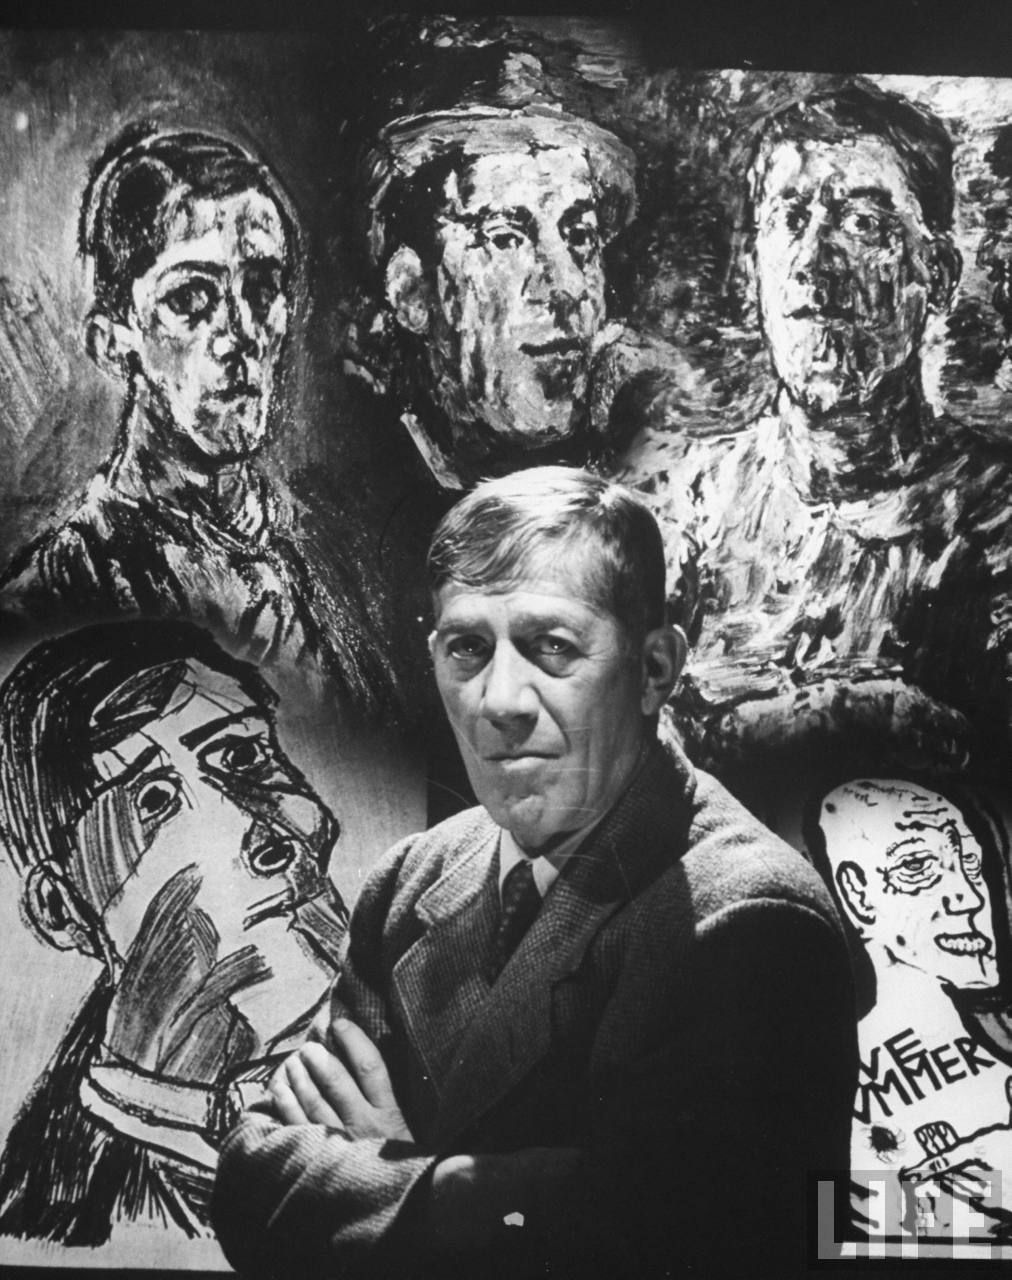 a biography of oskar kokoschka an austrian artist poet and playwright Oskar kokoschka (1 march 188622 february 1980) was an austrian artist, poet and playwright best known for his intense expressionistic portraits and landscapes writings kokoschka's literary works are as peculiar and interesting as his art.